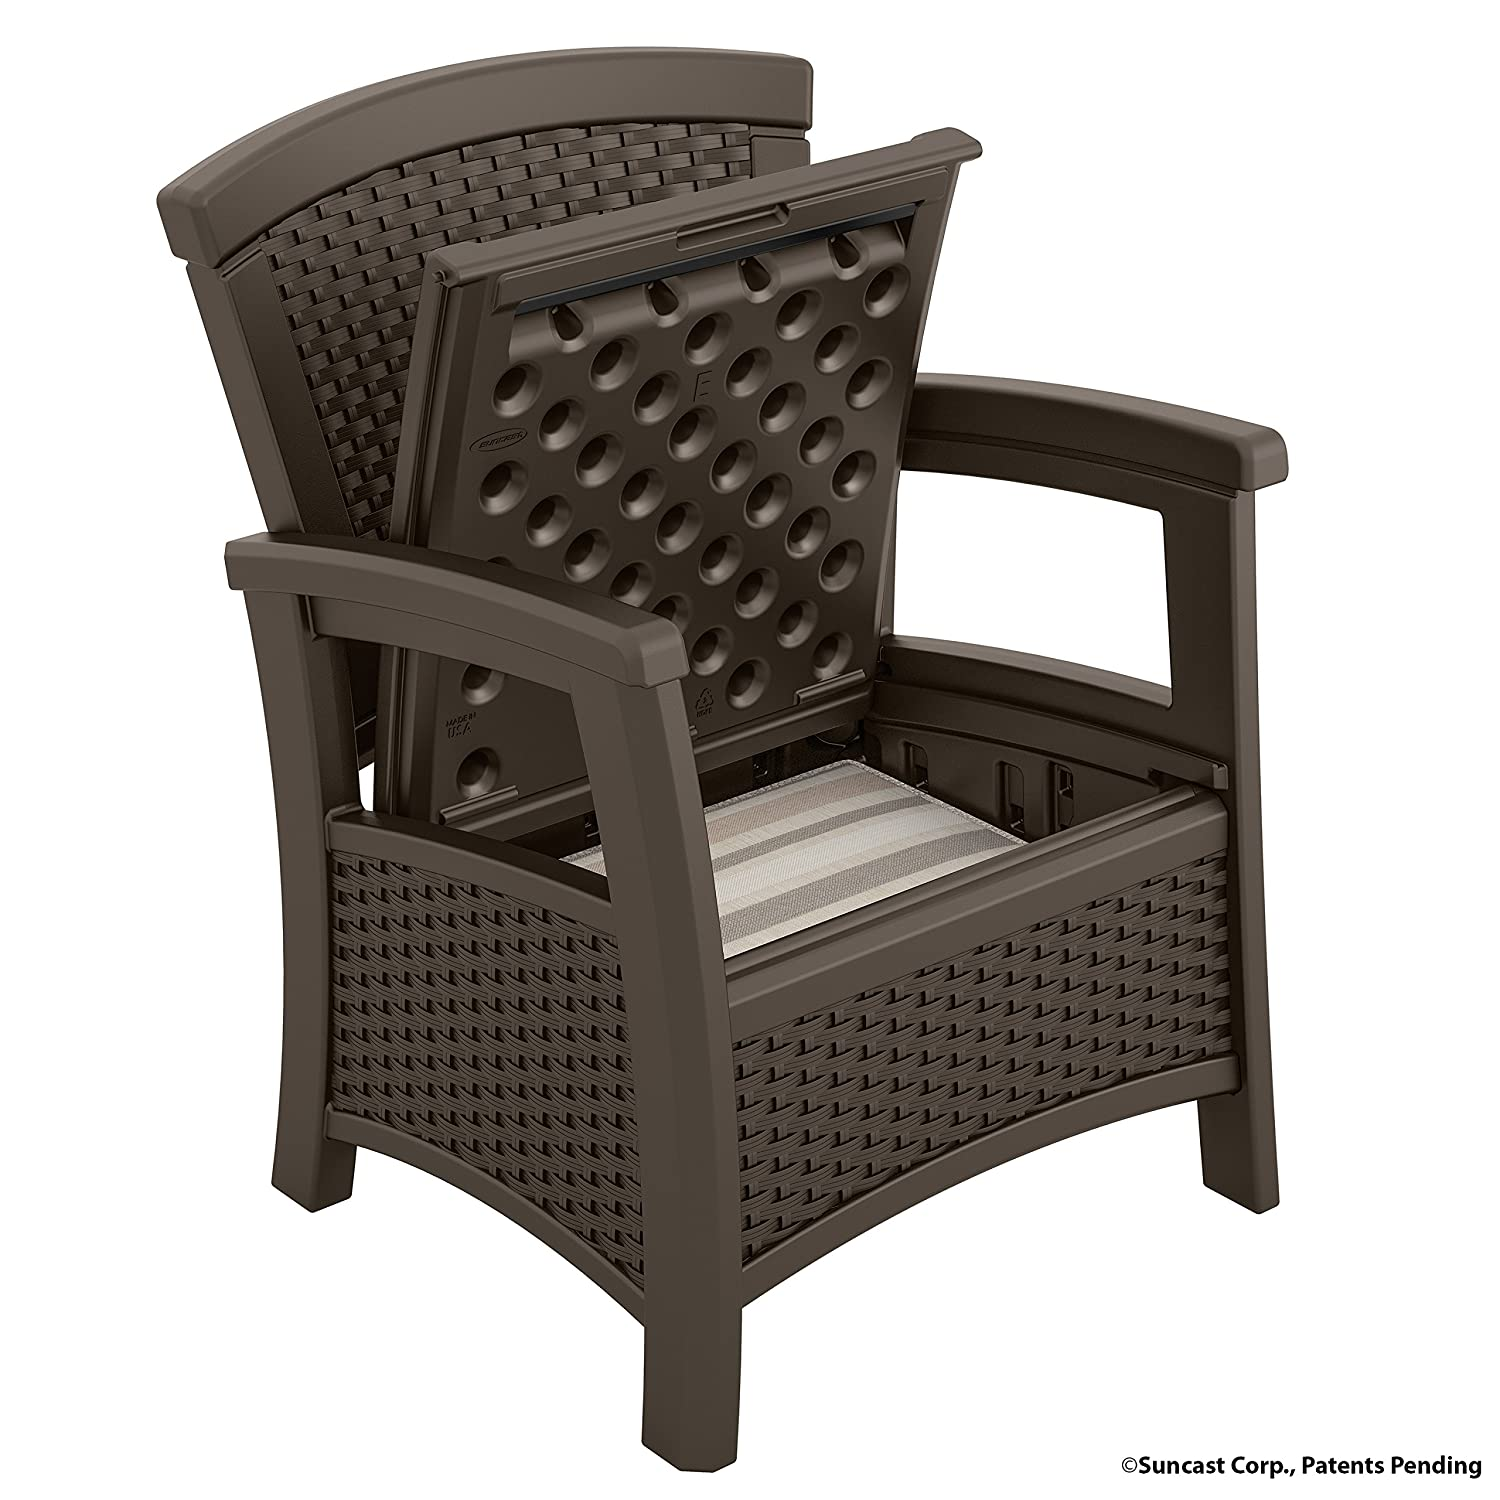 Good Amazon.com : Suncast ELEMENTS Club Chair With Storage, Java : Patio, Lawn U0026  Garden